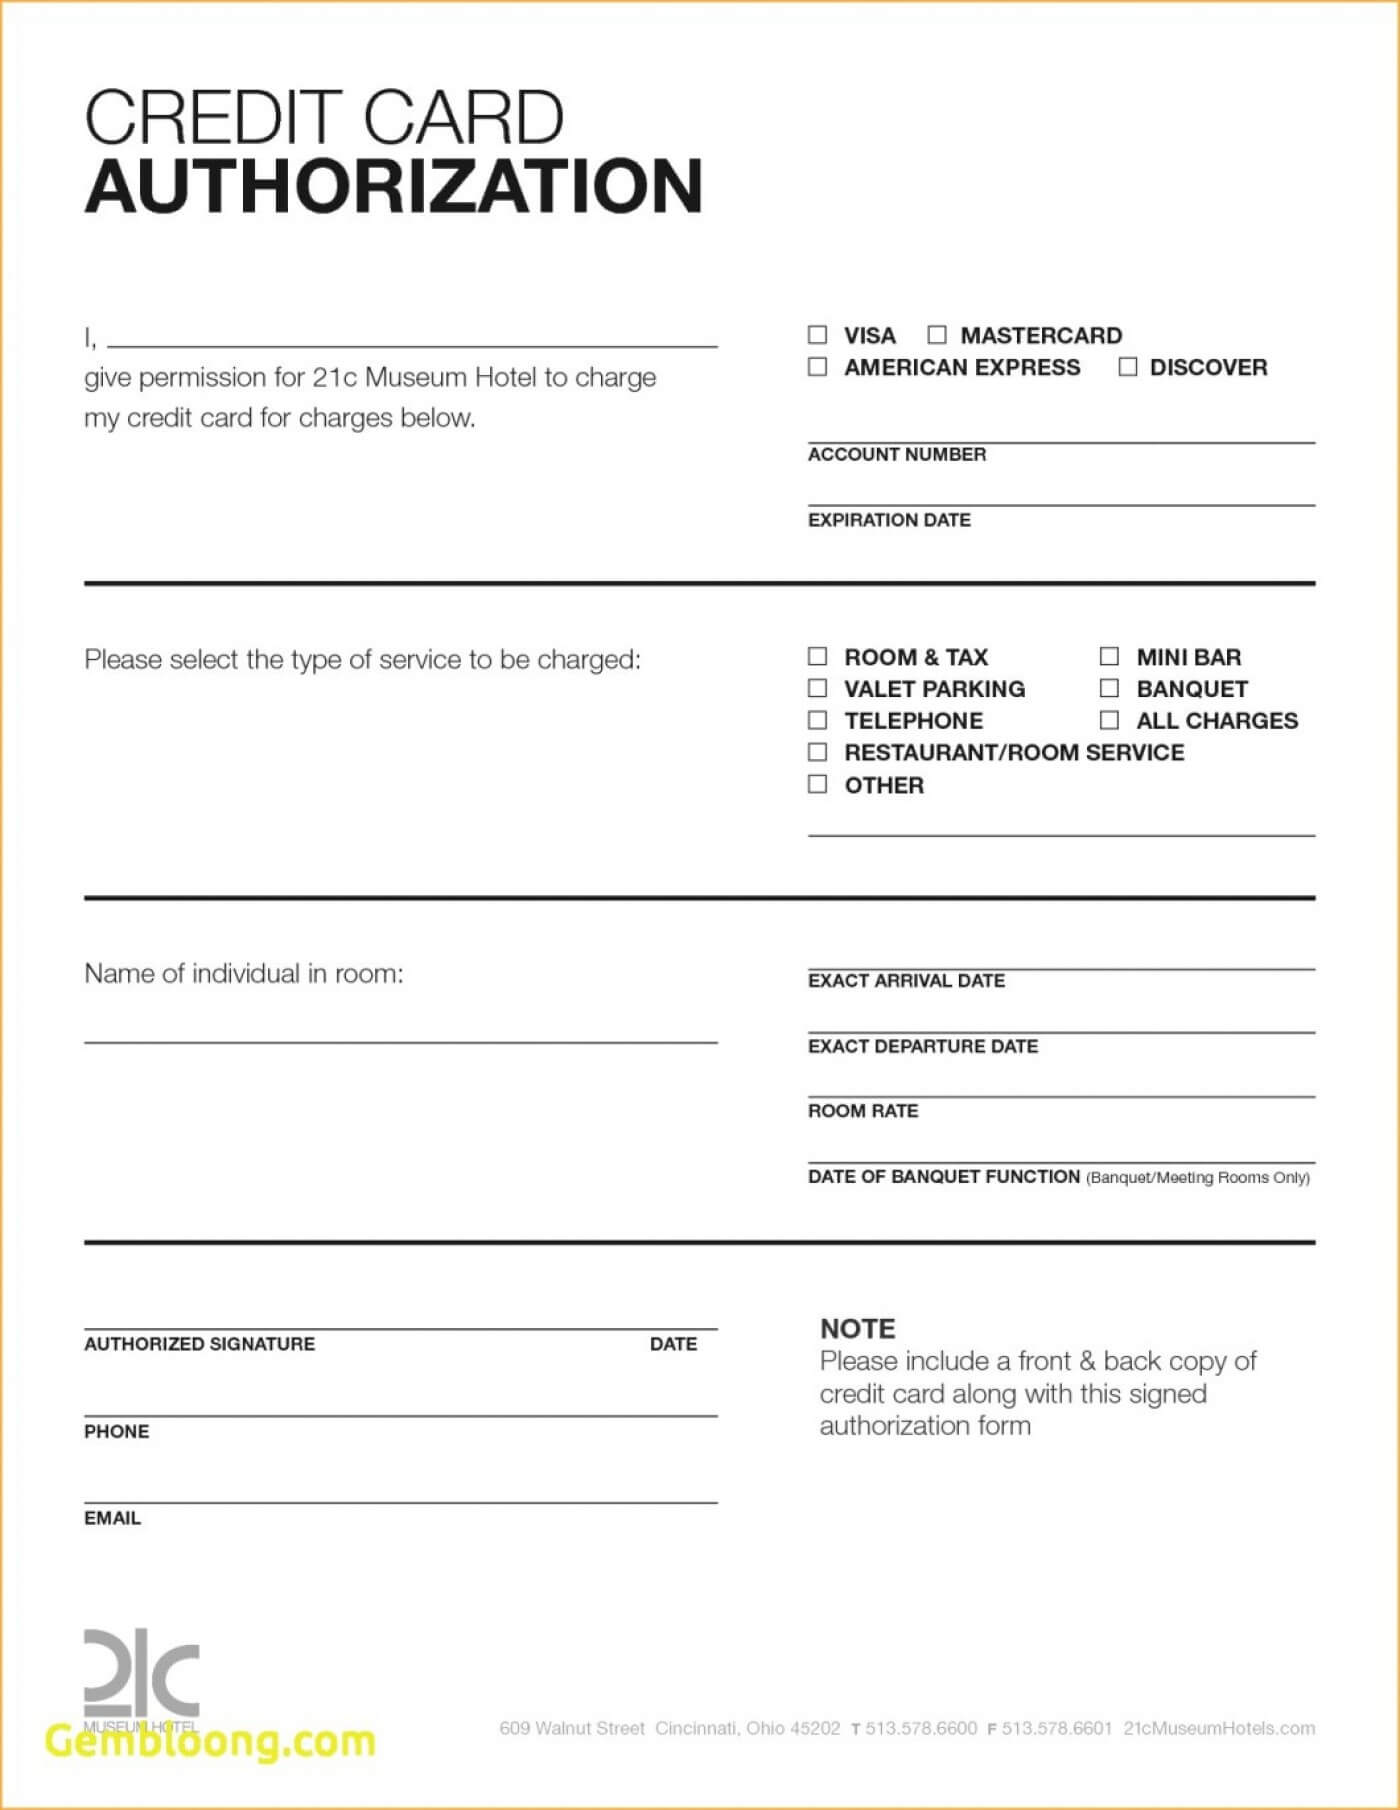 025 Credit Card Authorization Form Template Download Word In Credit Card Size Template For Word